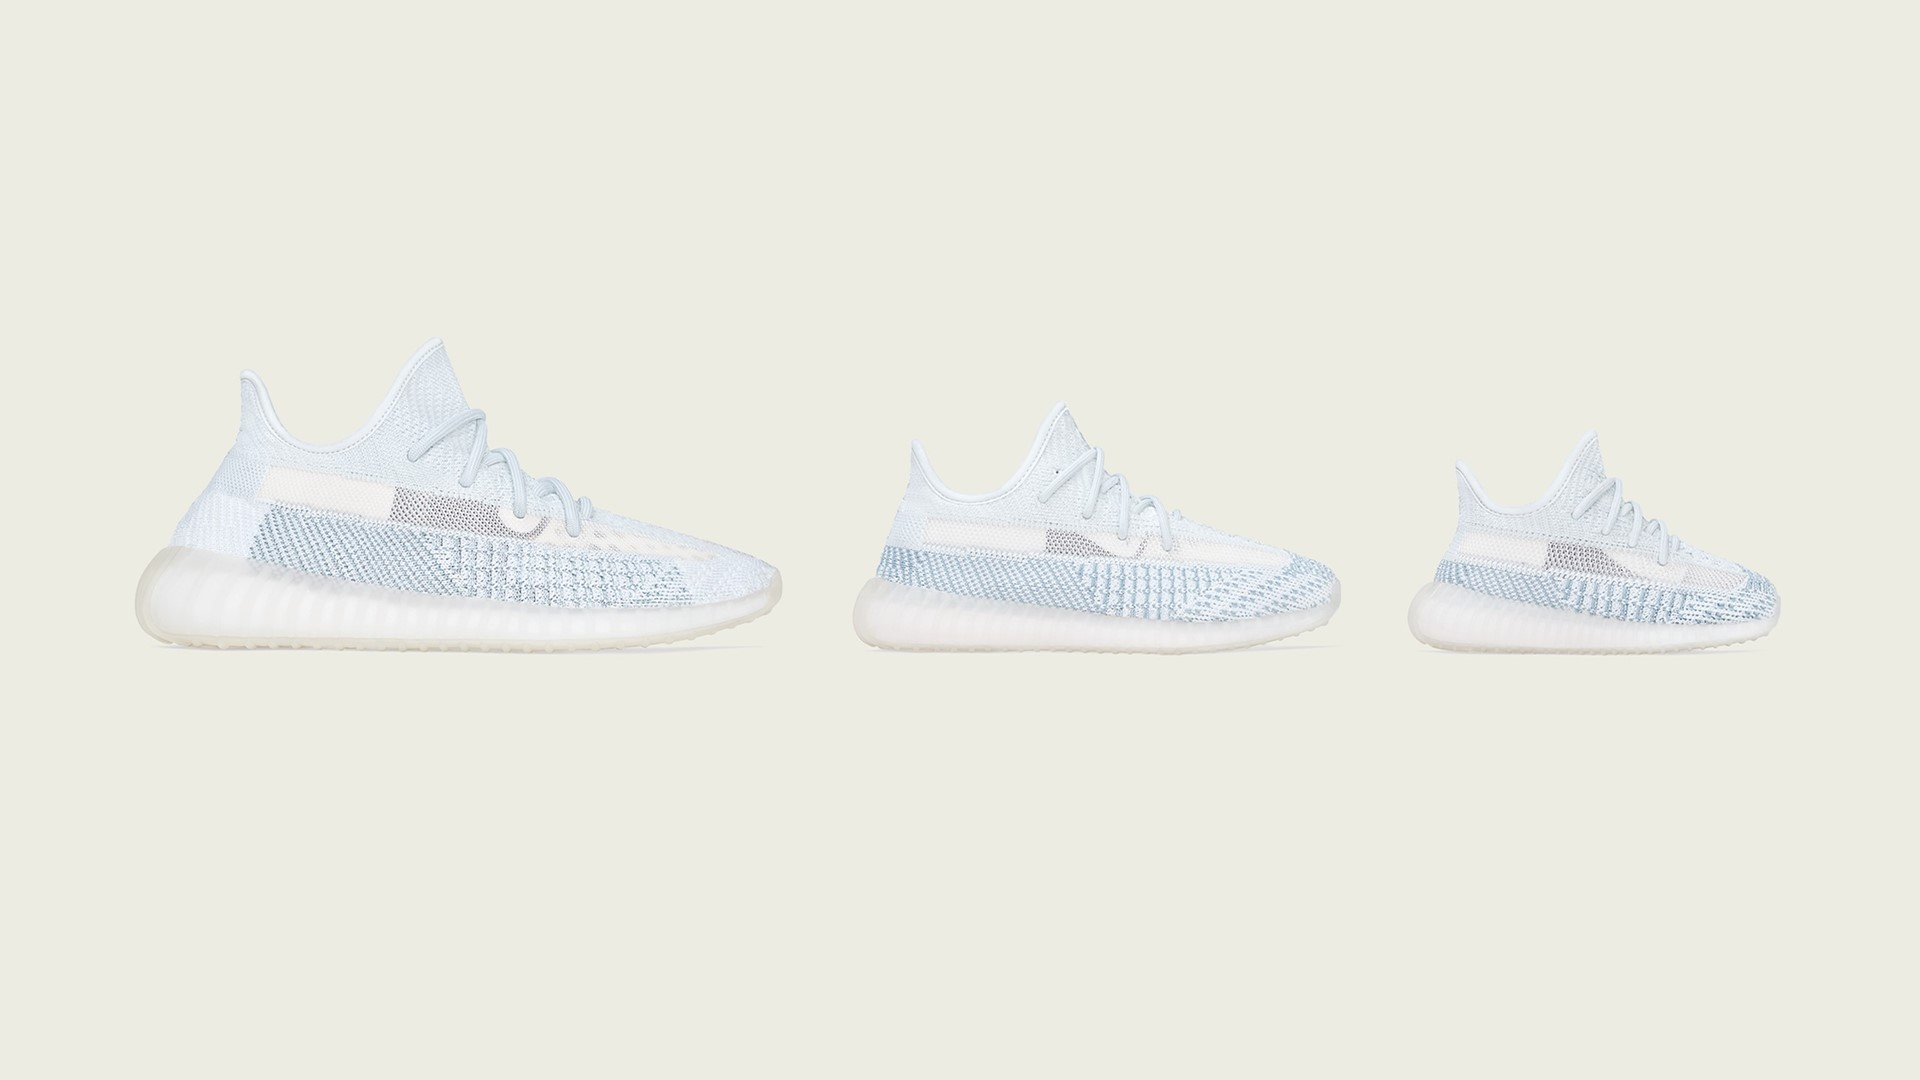 adidas + Kanye West announce the Yeezy Boost 350 v2 cloud white